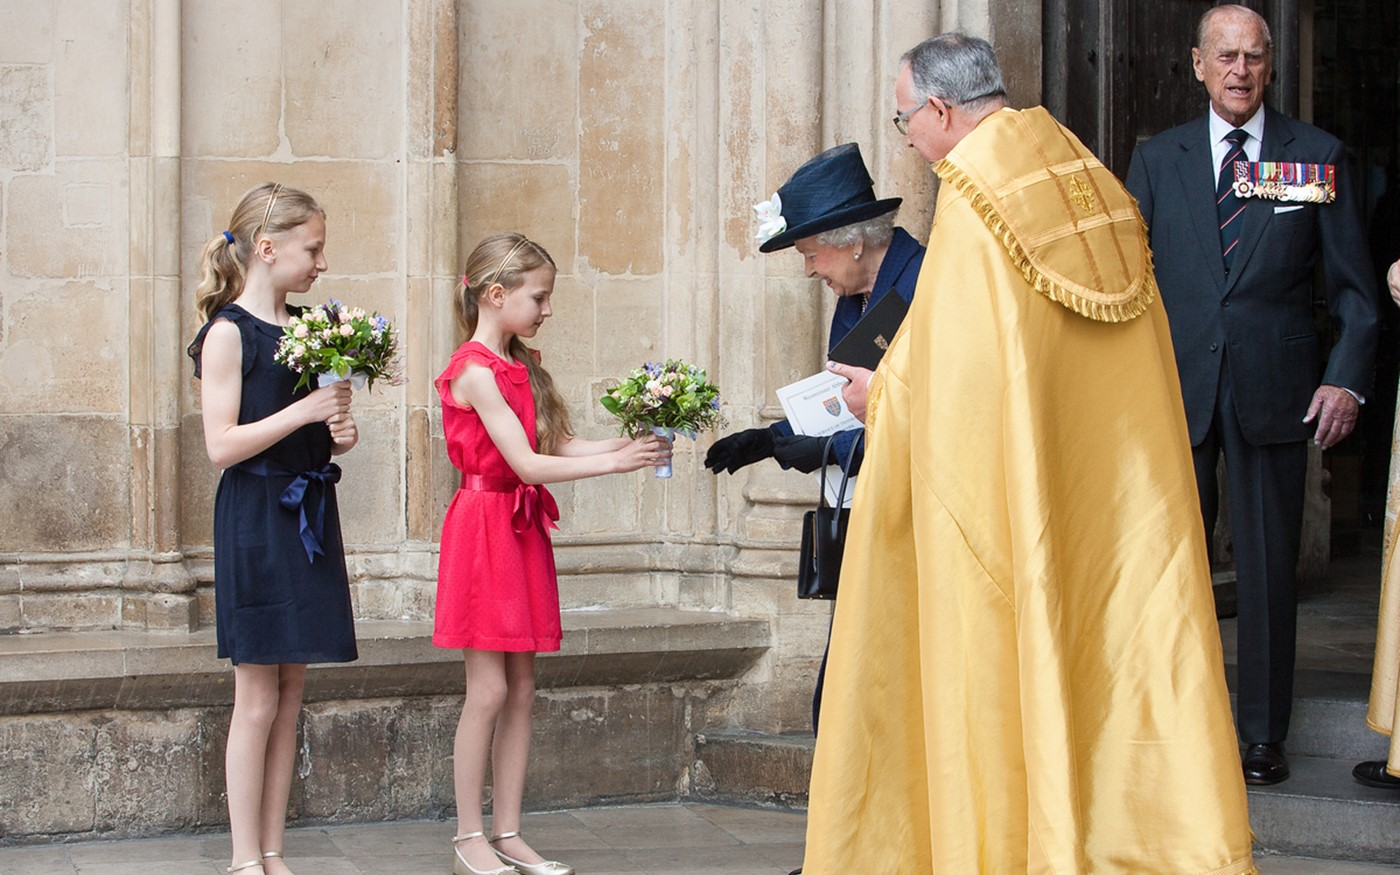 Posies are presented to Her Majesty The Queen and HRH Duchess of Cornwall